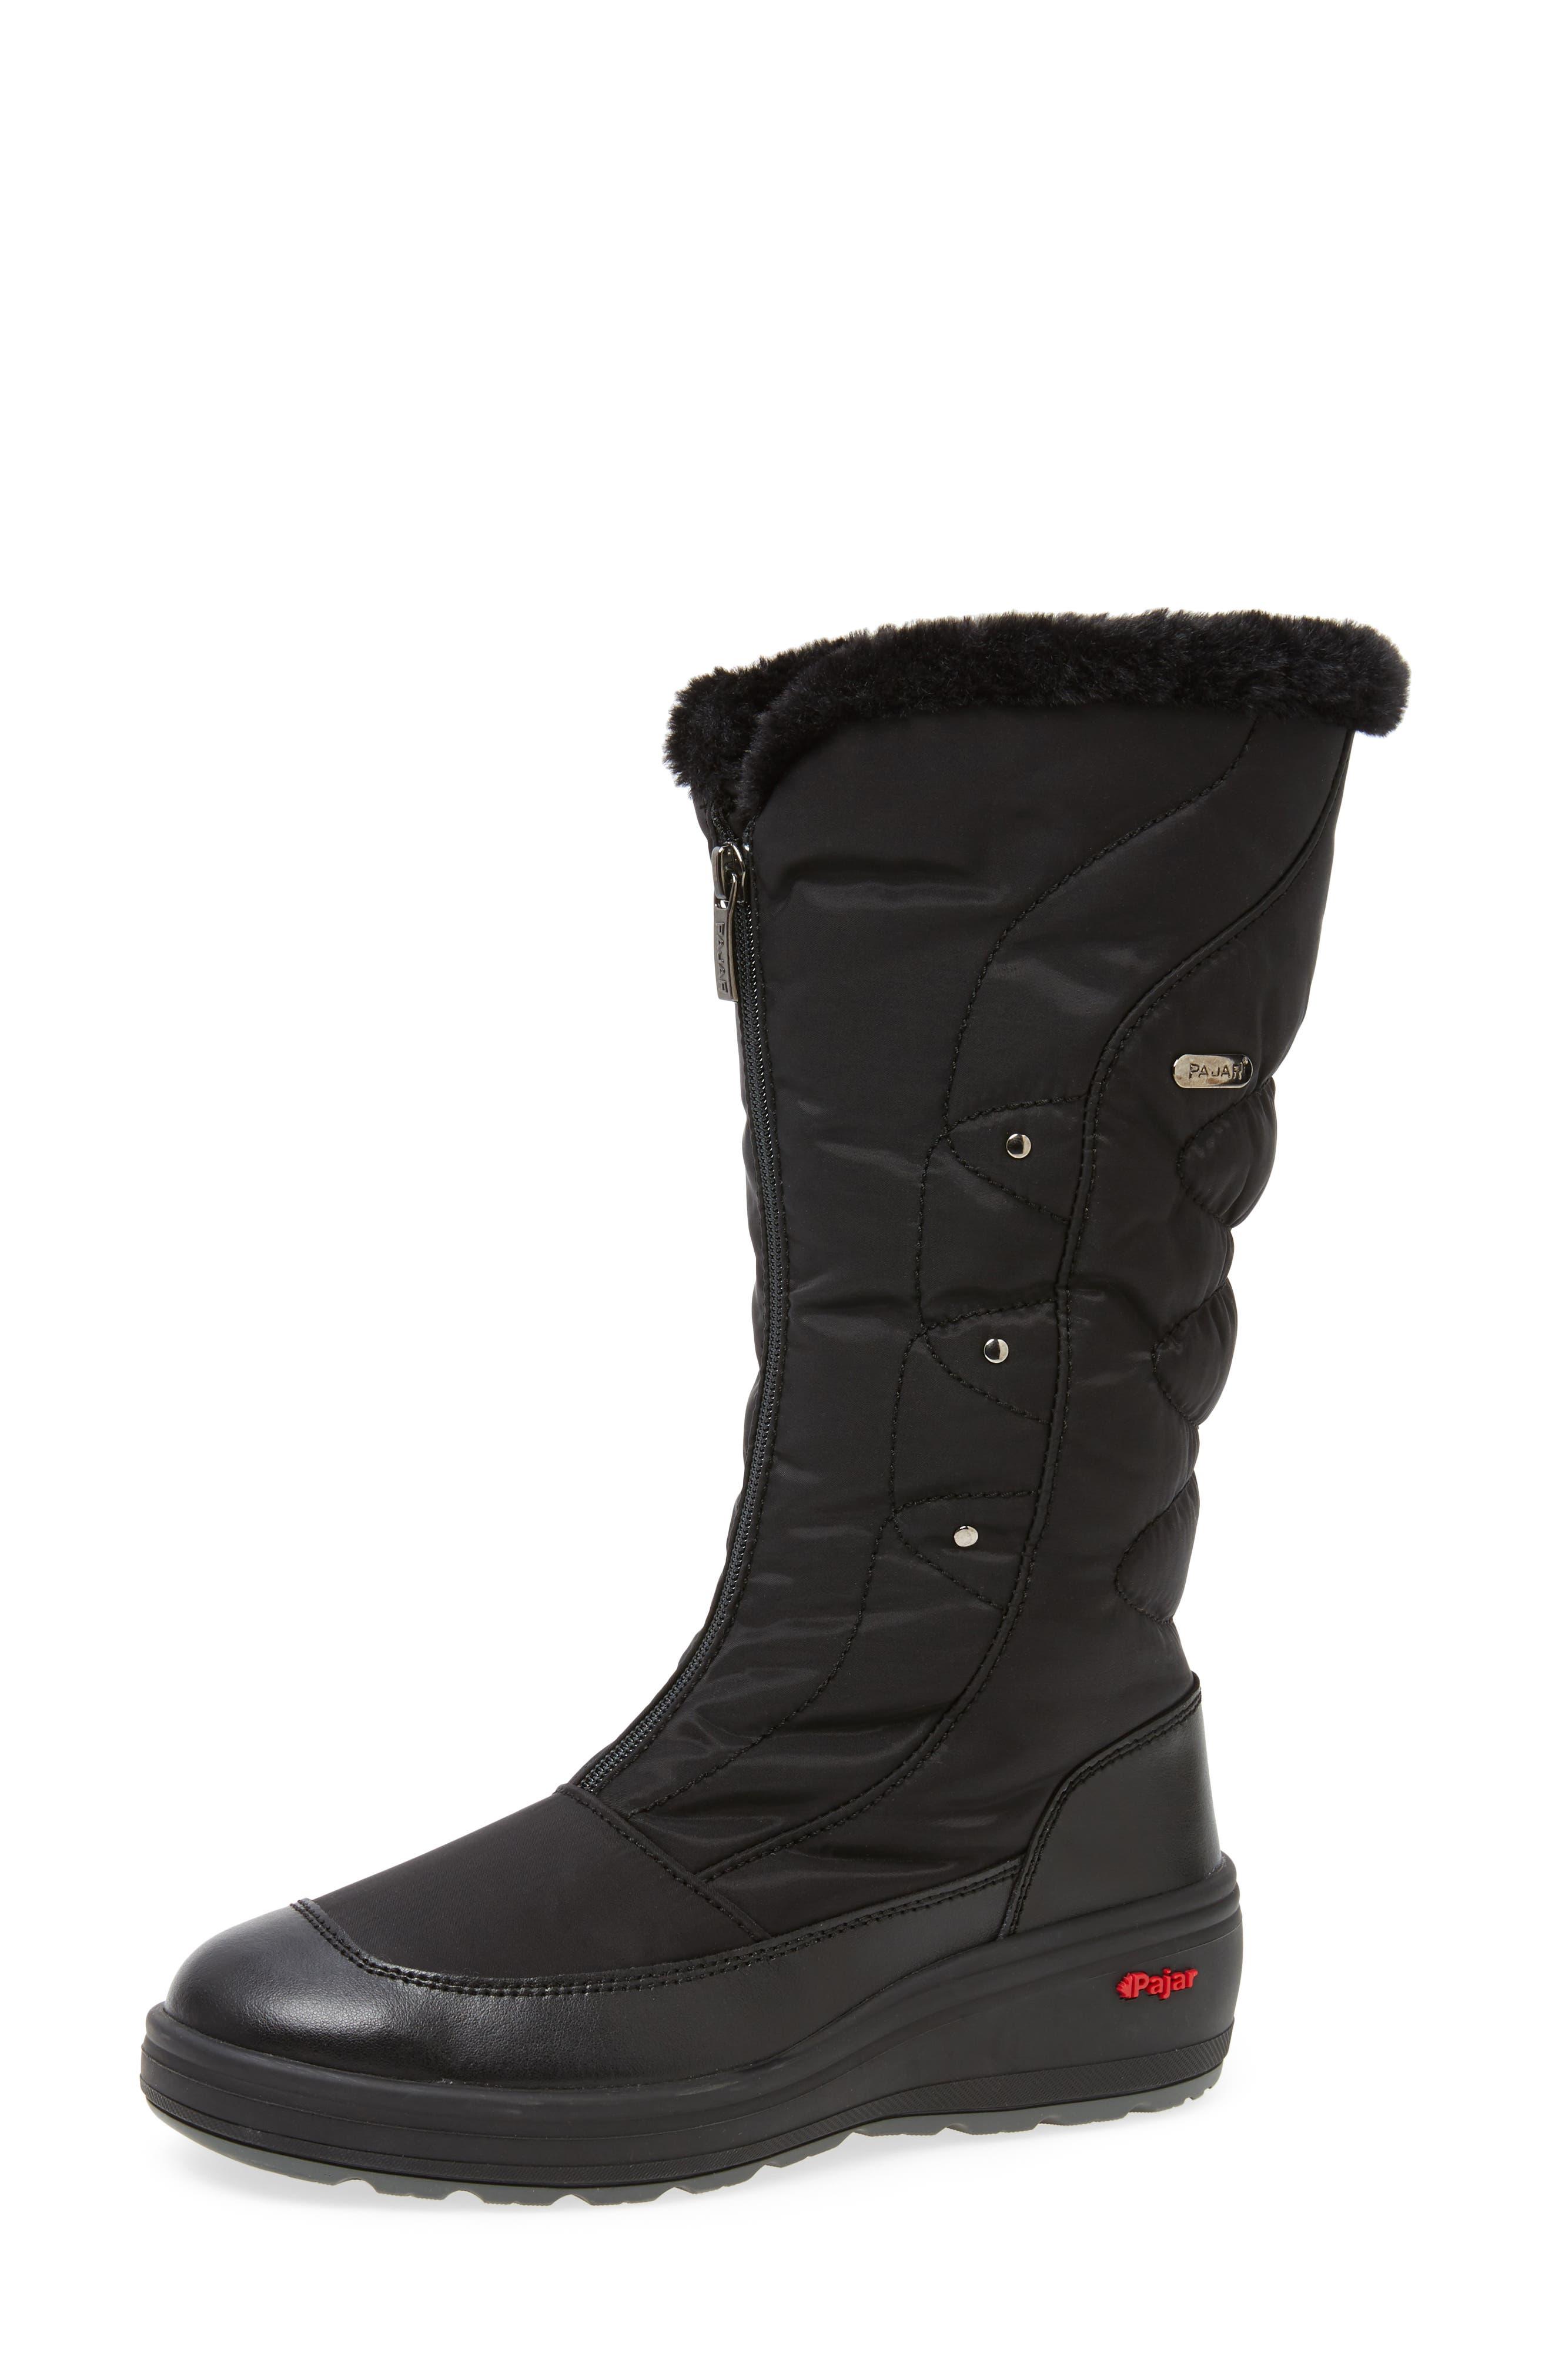 Fusion Weatherproof Boot,                         Main,                         color, 001